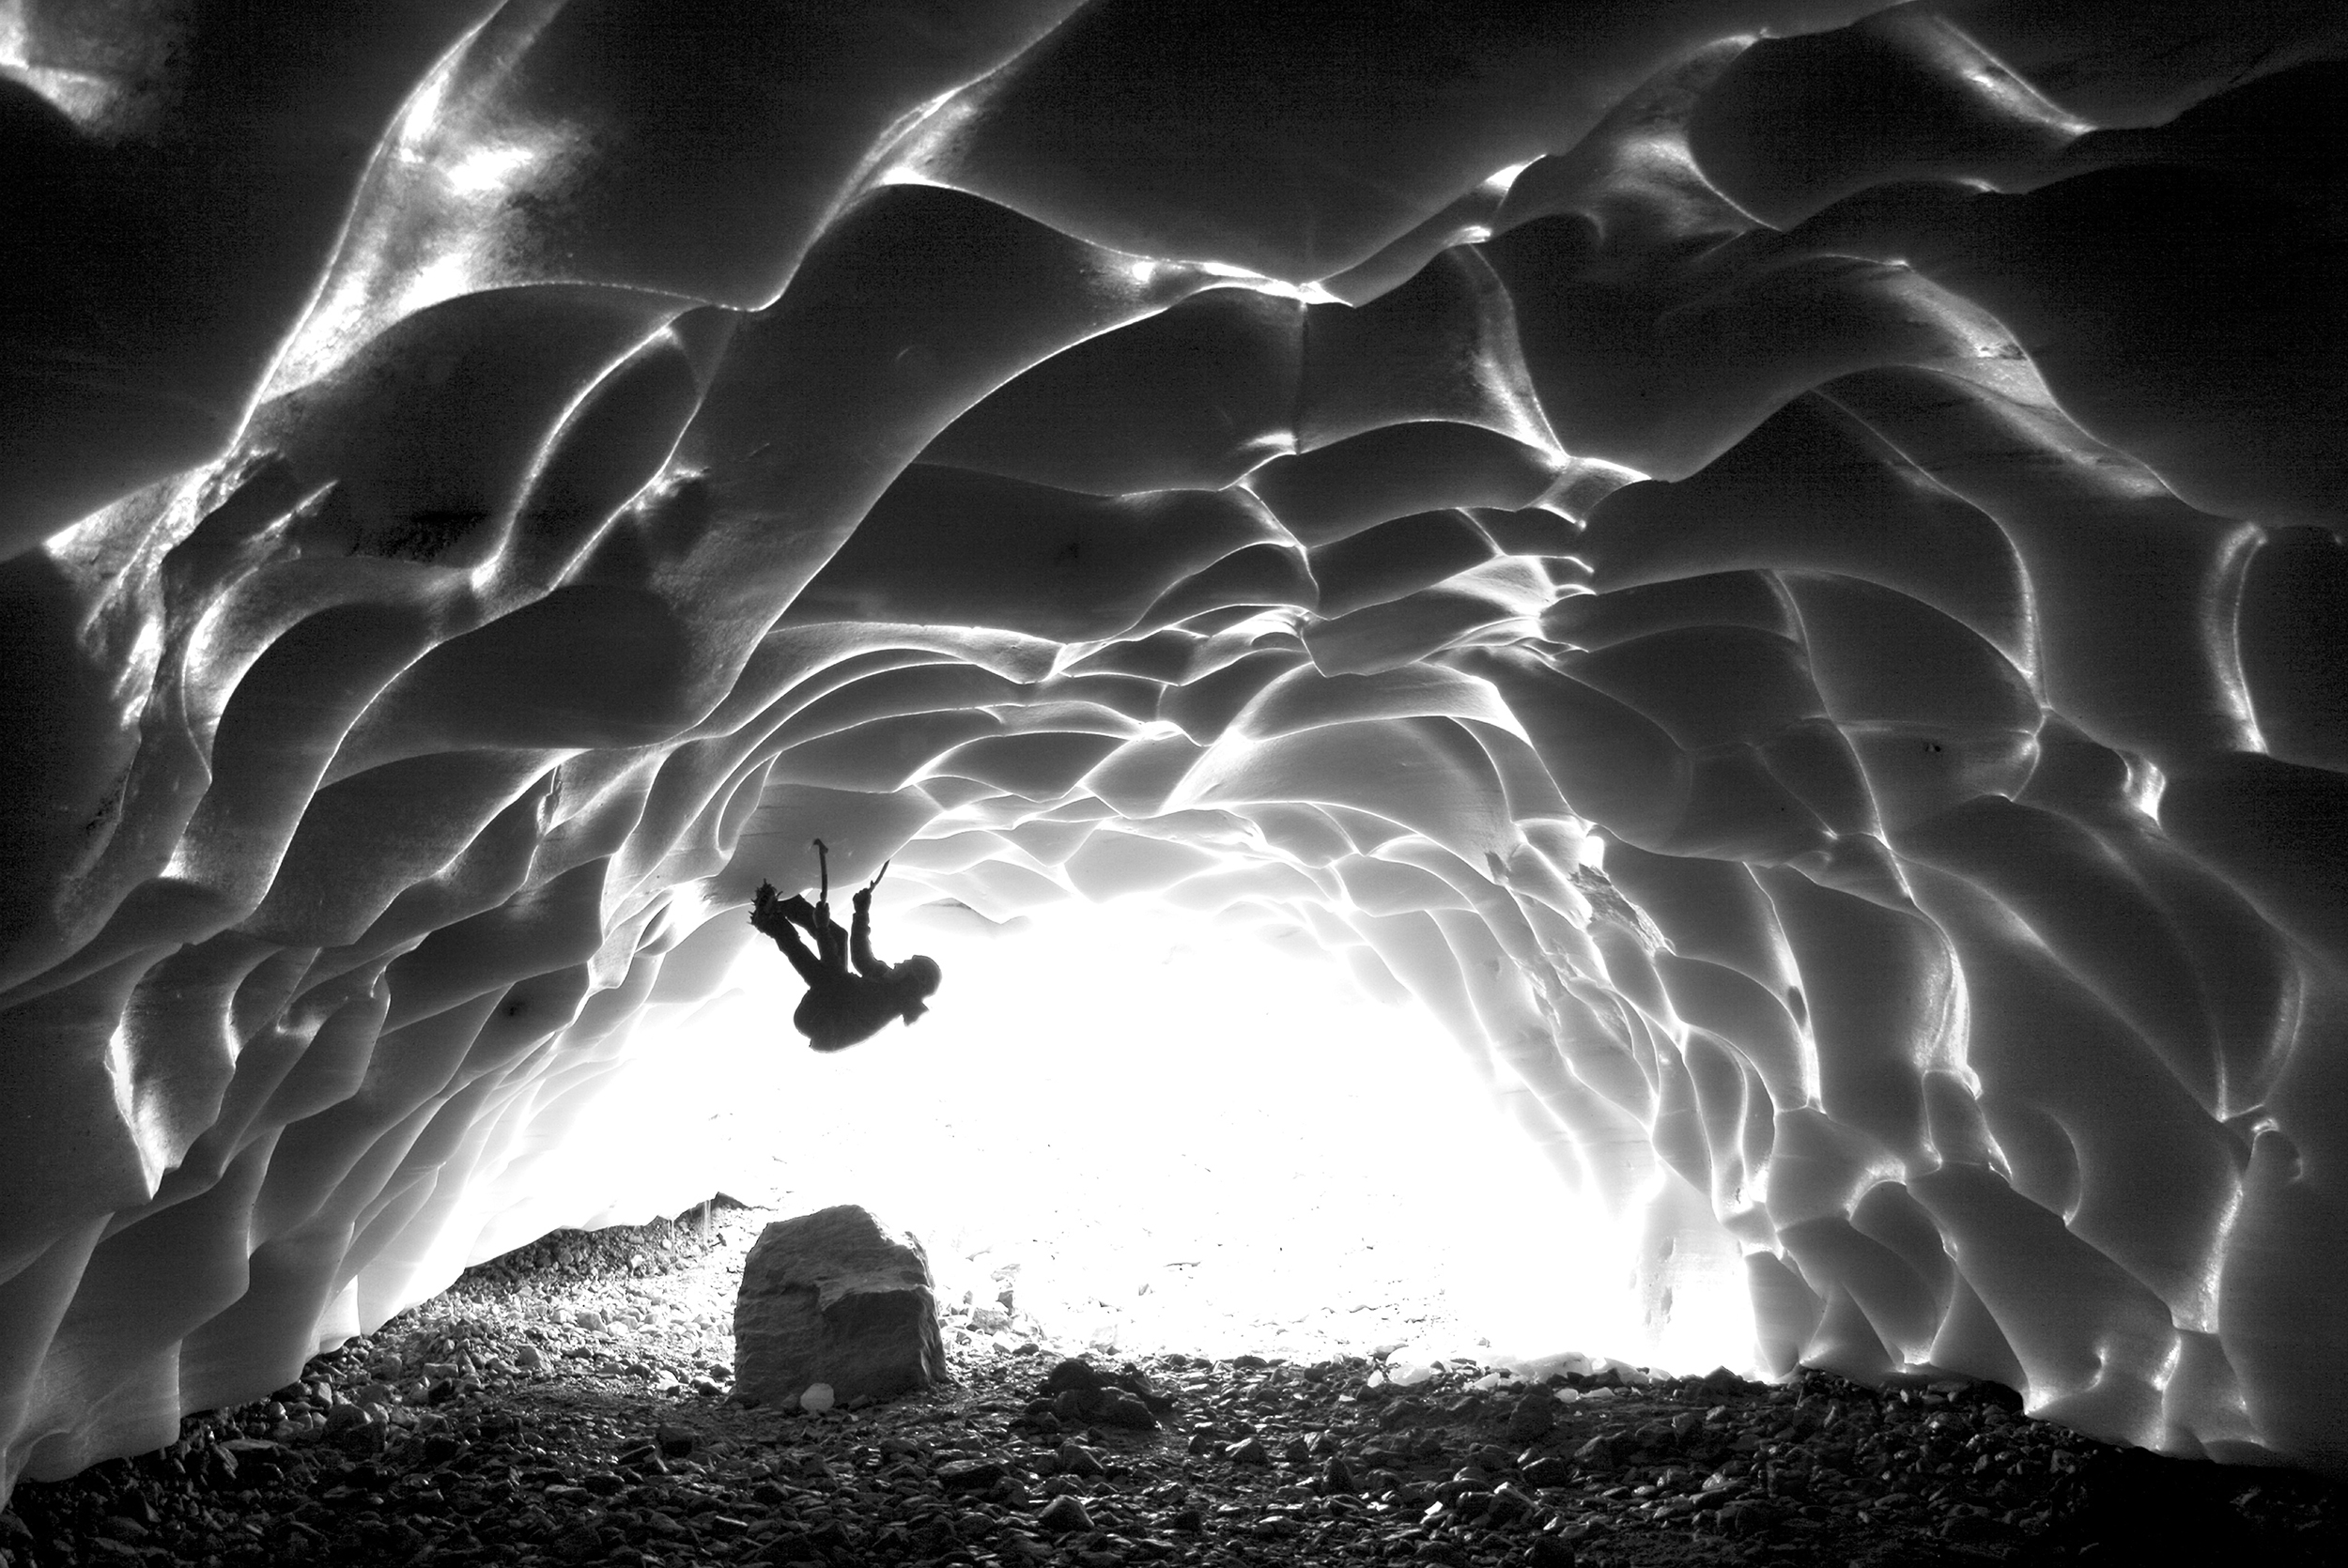 Jarret Long in the Cavell ice cave